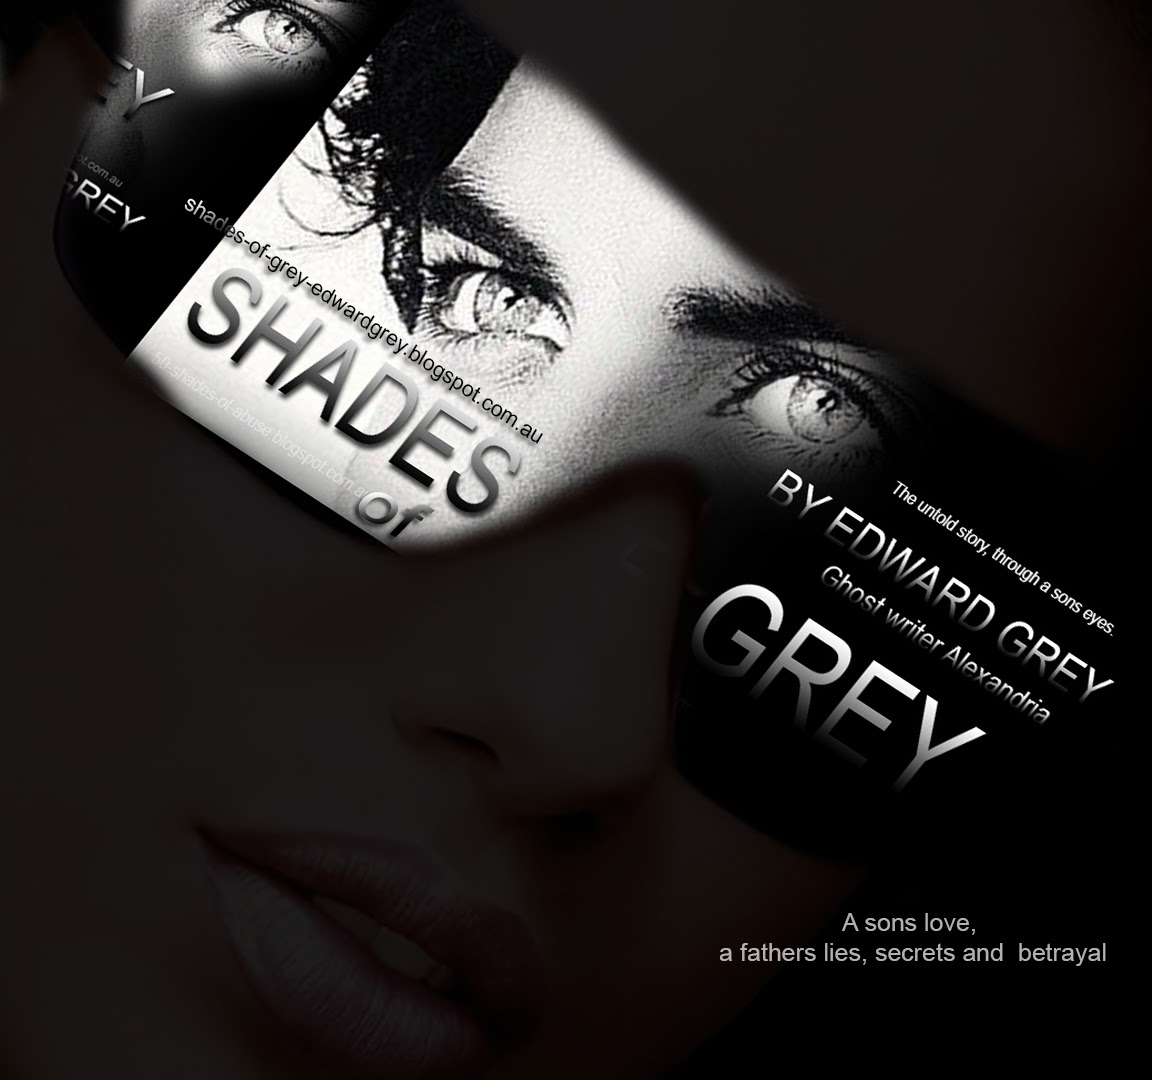 Grey-shades of grey by edward grey